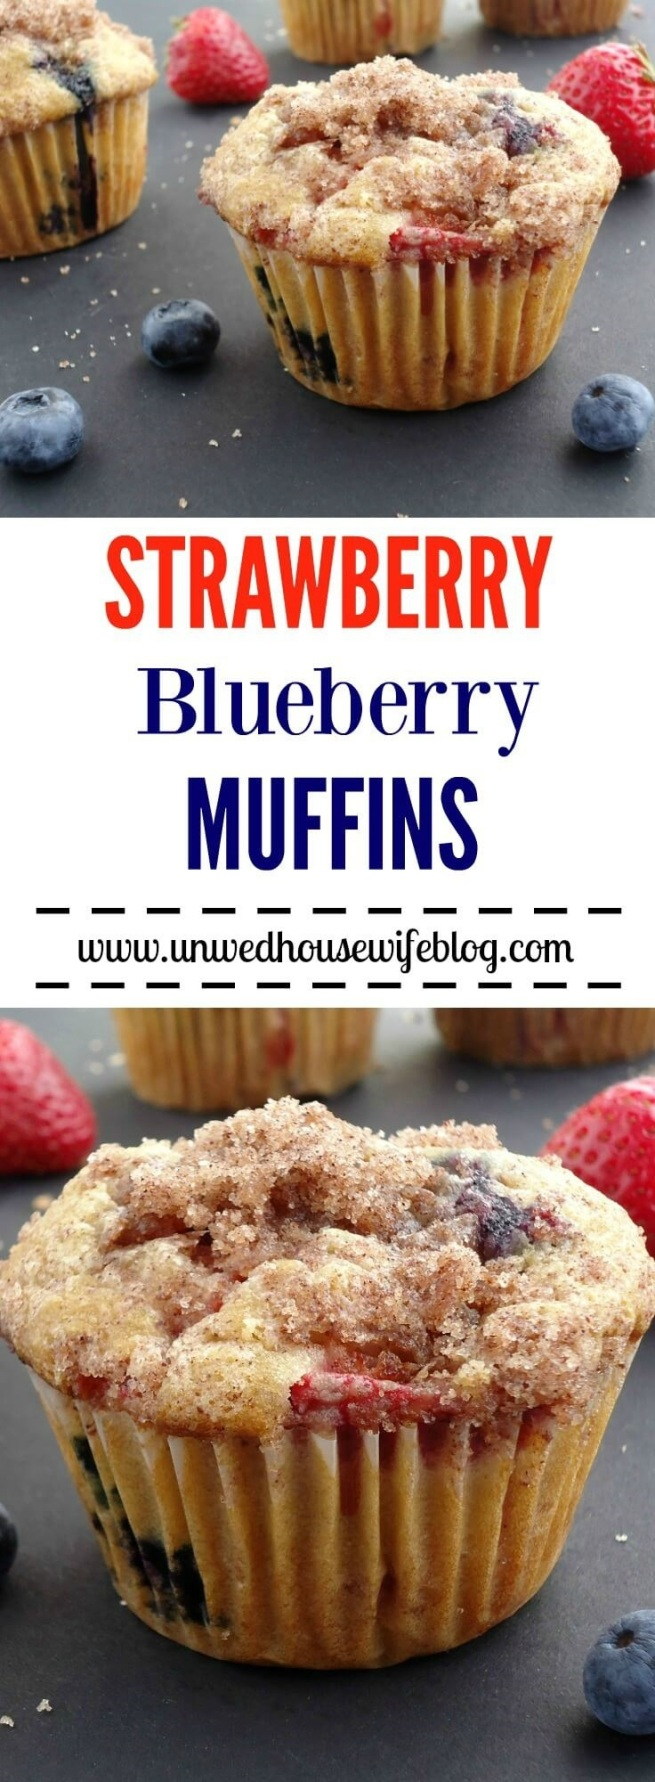 Strawberry Blueberry Muffins | Unwed Housewife | Big, bakery style muffins made with fresh strawberries and blueberries and topped with a cinnamon sugar crumble. One-of-a-kind strawberry blueberry muffin recipe.